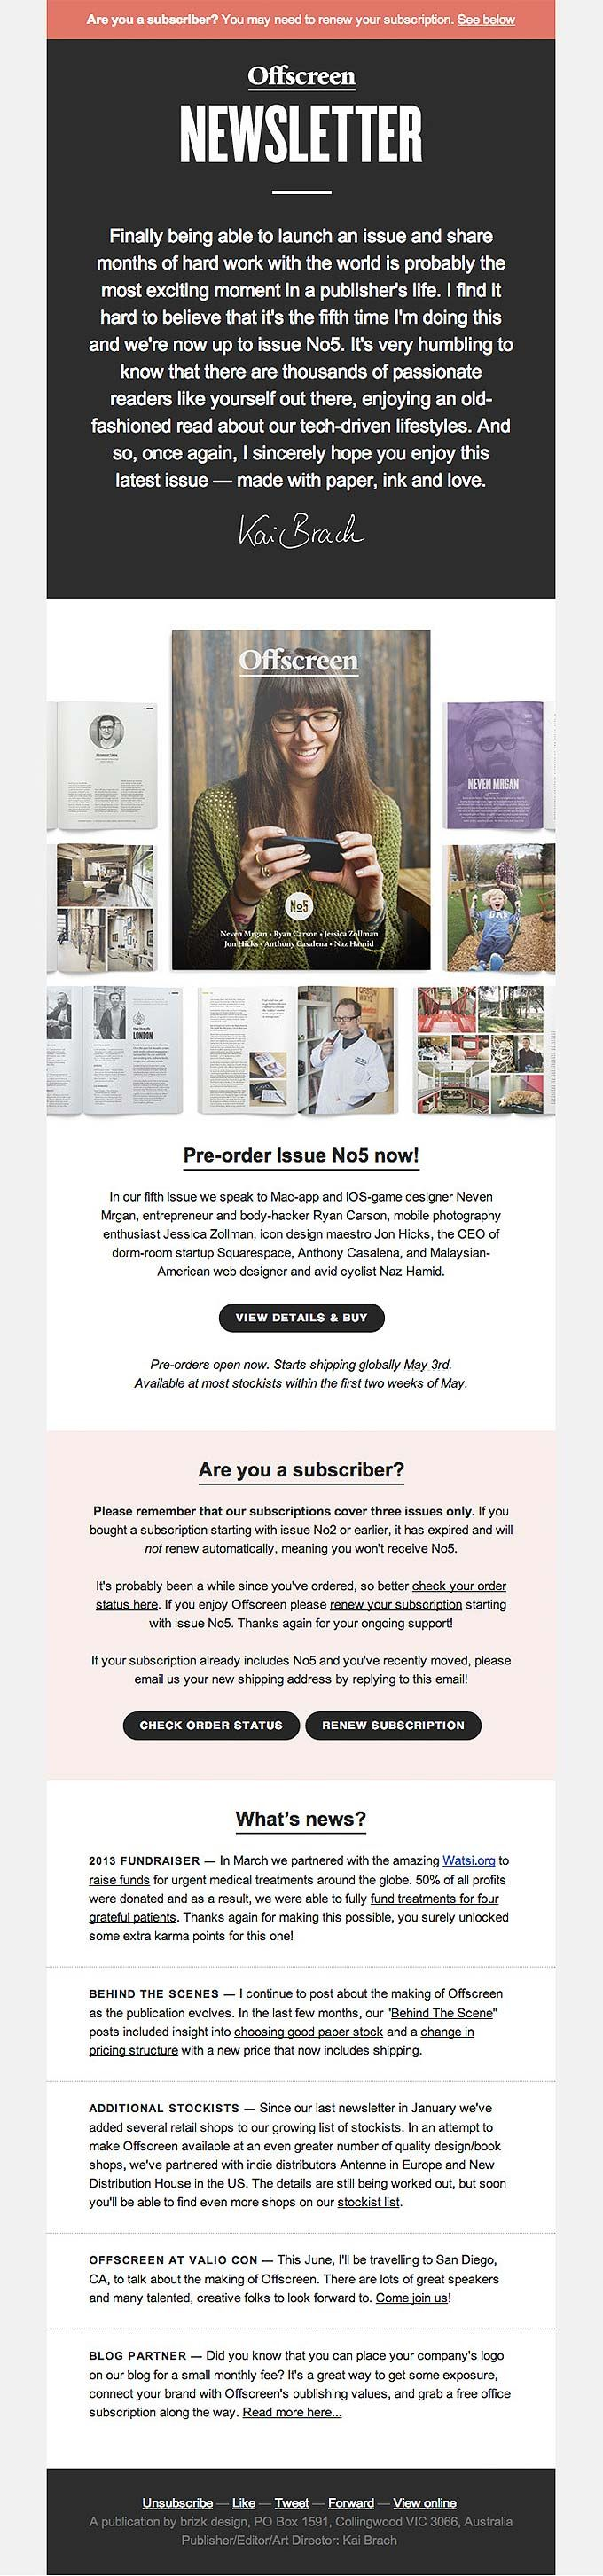 Product Update Email Design from Offscreen Magazine   Email ...